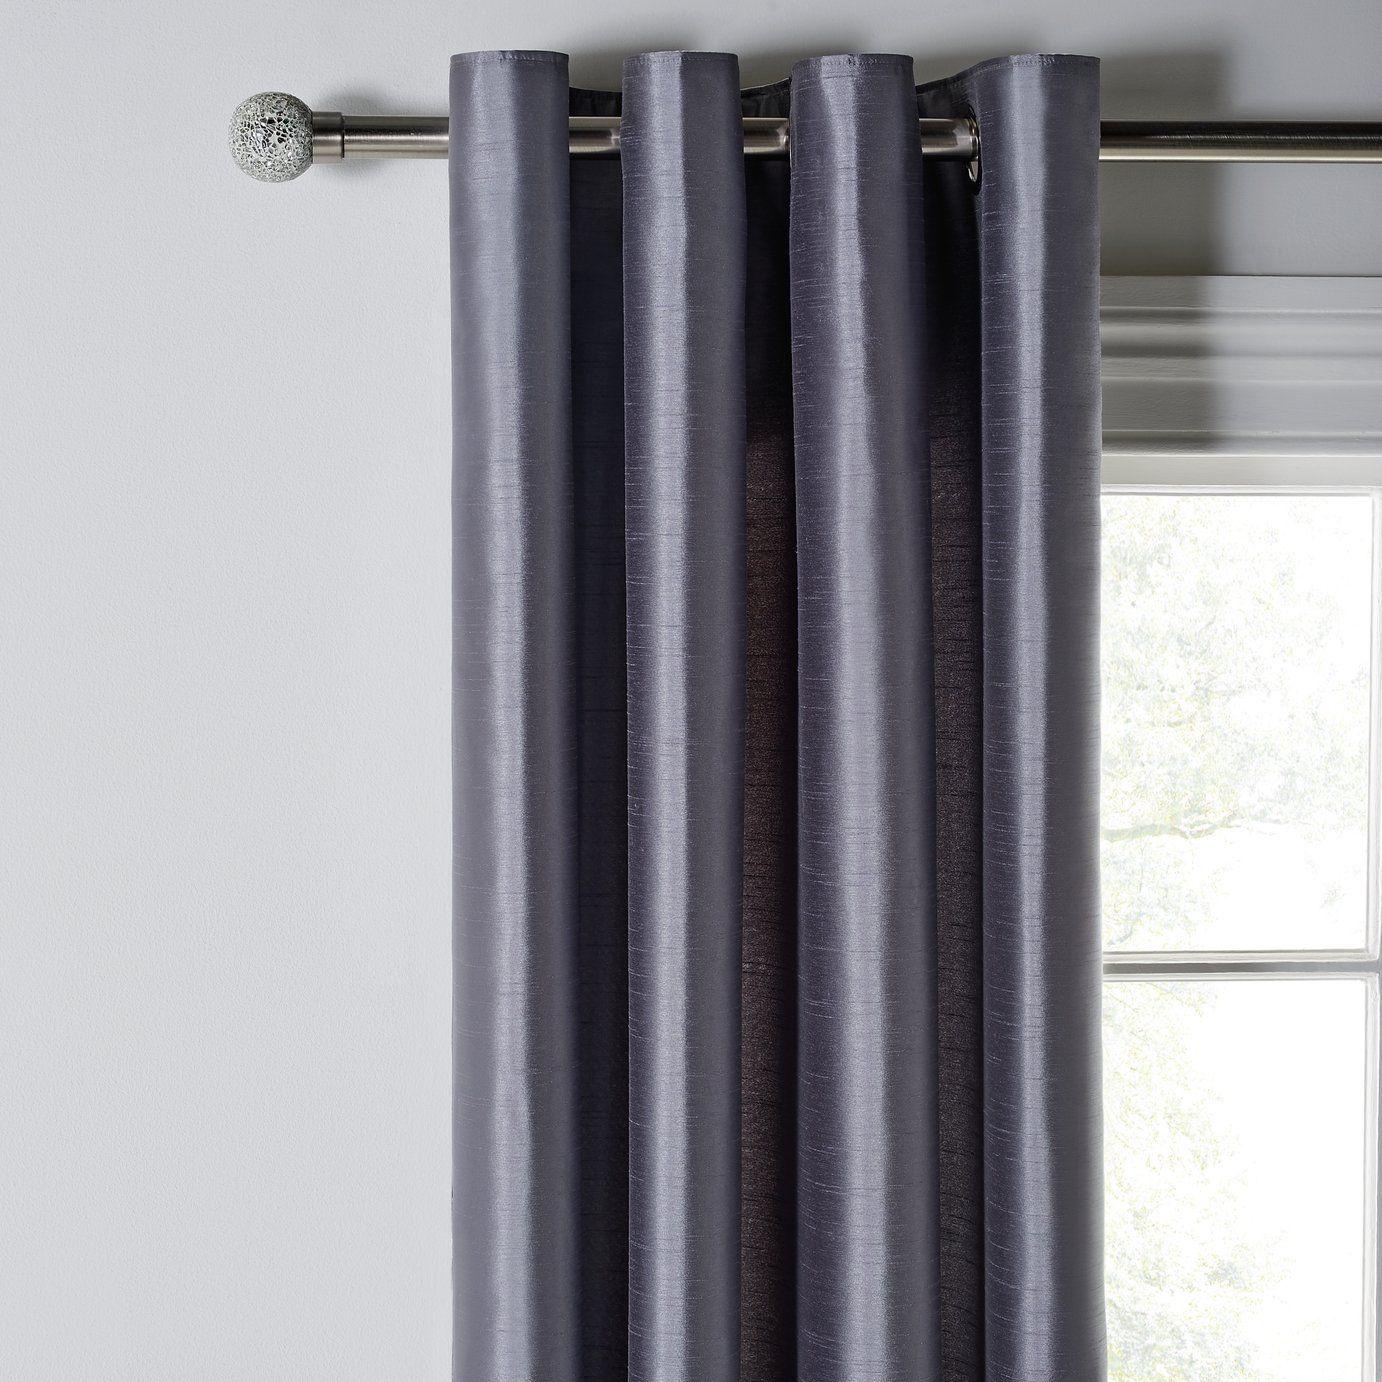 Buy Argos Home Faux Silk Lined Eyelet Curtains Dove Grey Curtains In 2020 Faux Silk Curtains Curtains Silk Curtains